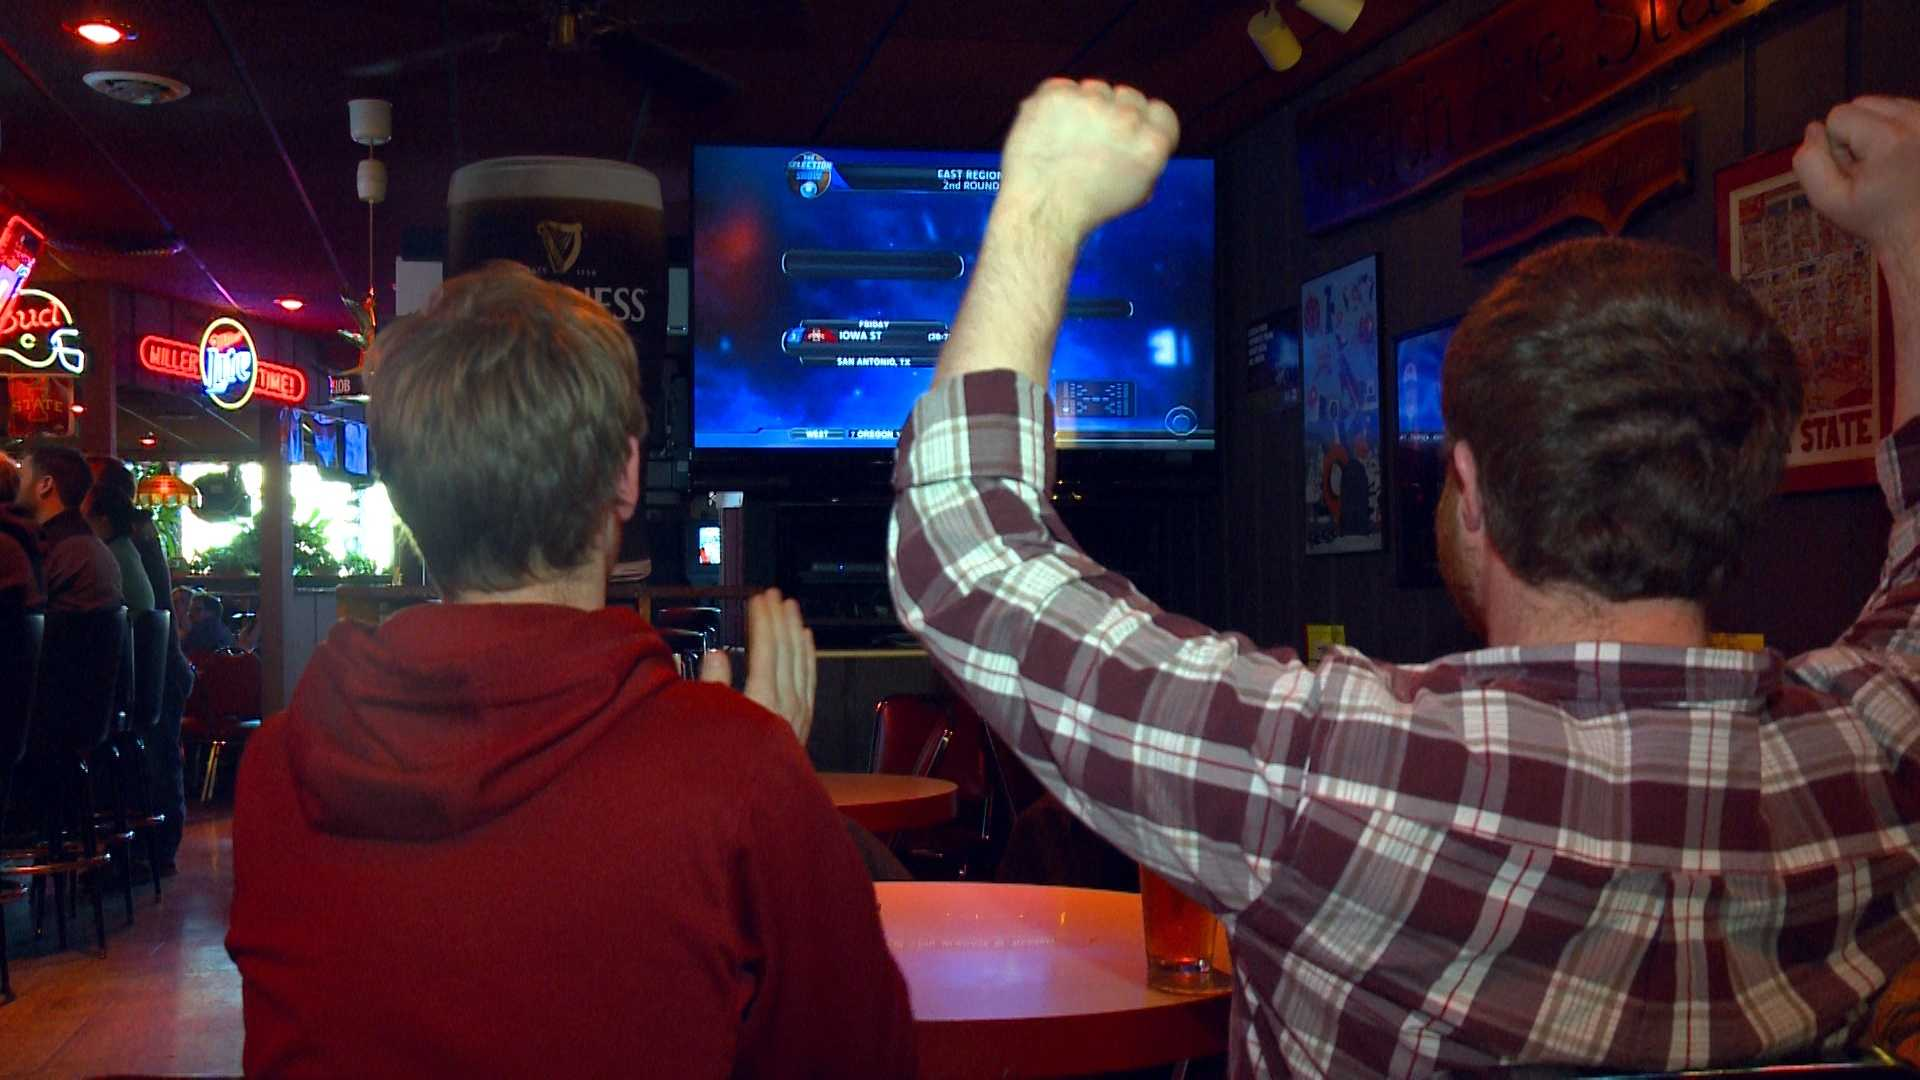 Cyclone fans excited about championship weekend